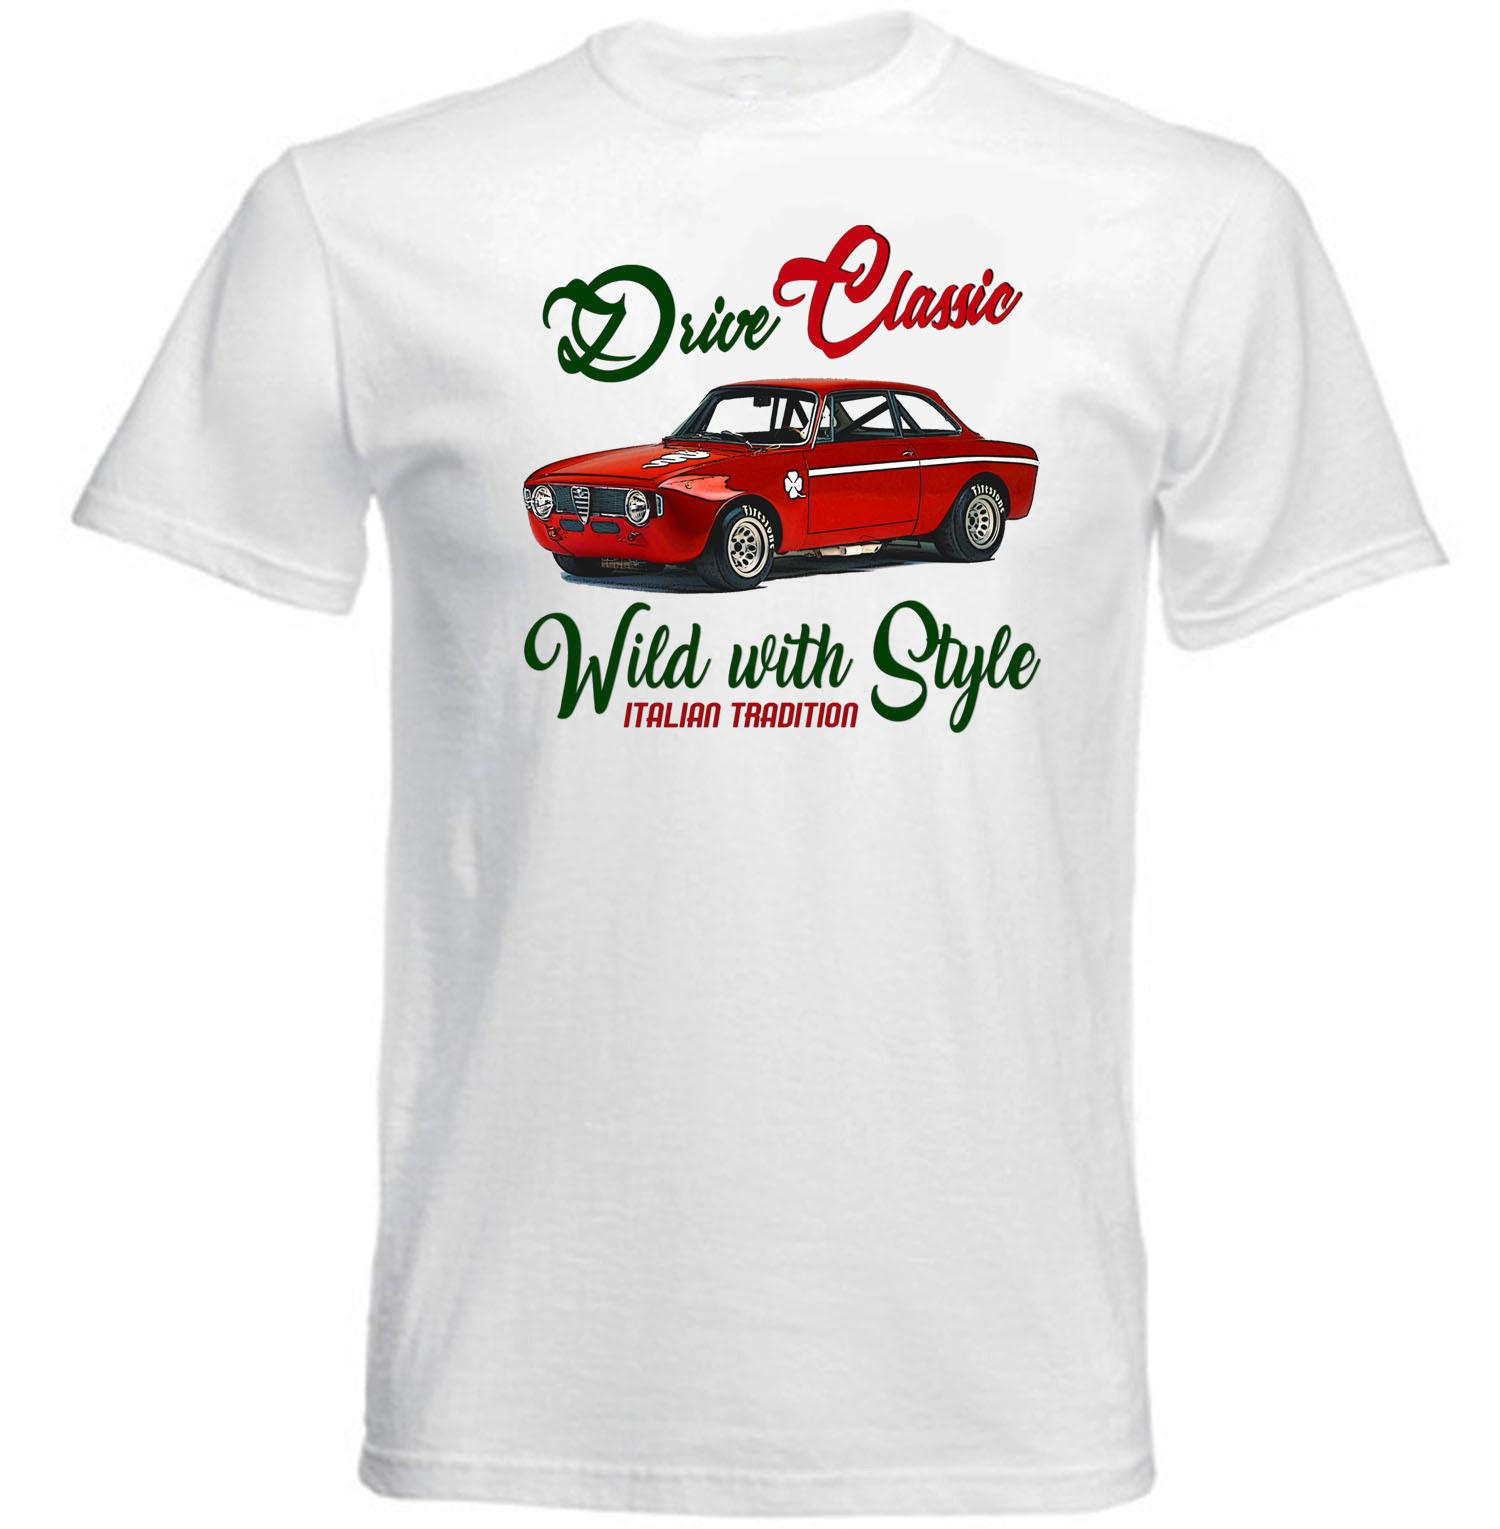 Vintage Italian Car Alfa Romeo Gt Junior 1969 New Cotton T Shirt Sweatshirt Shirts Cheap Online With 3031 Piece